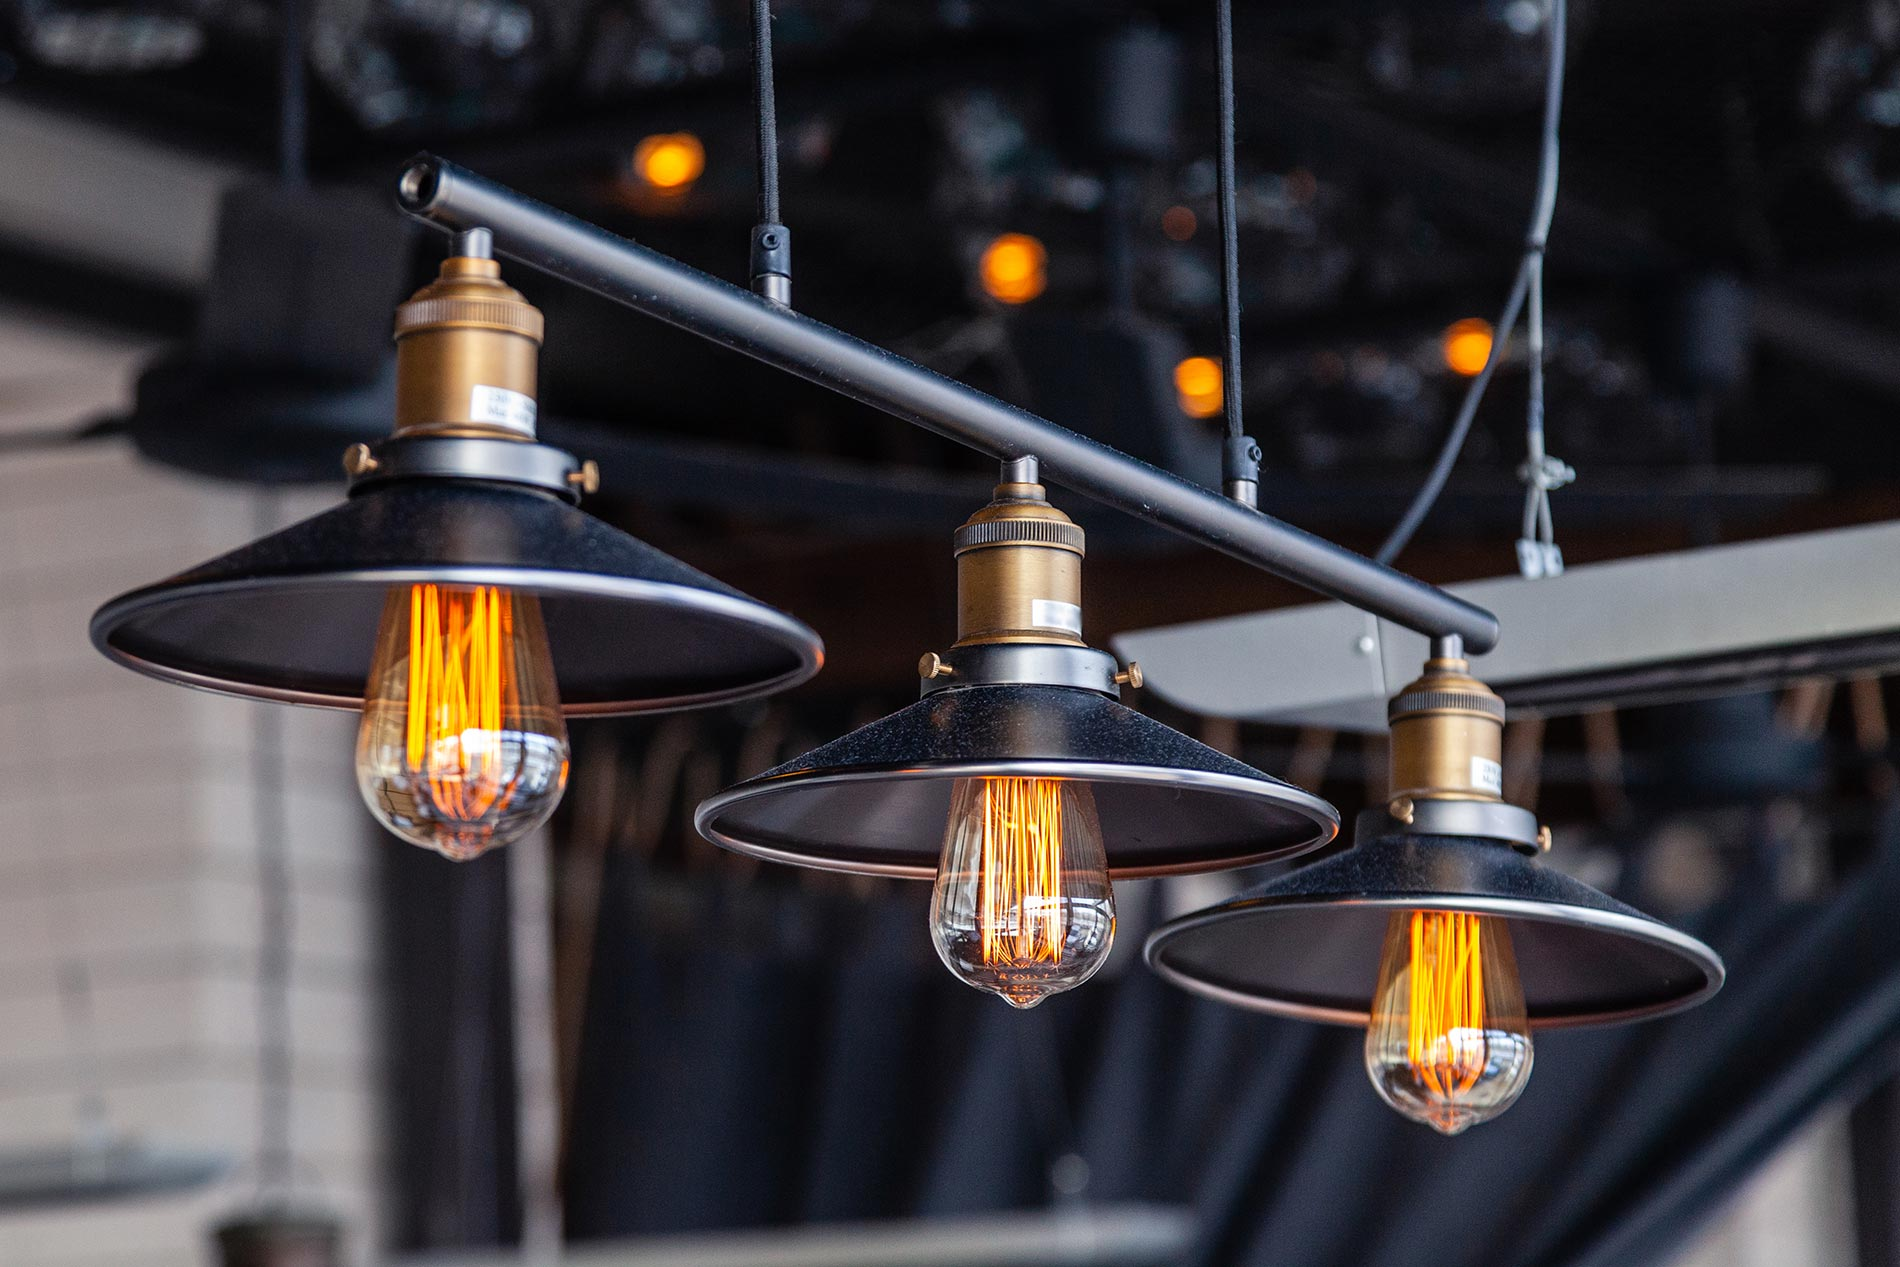 Industrial light fixtures - What is that you need to consider?